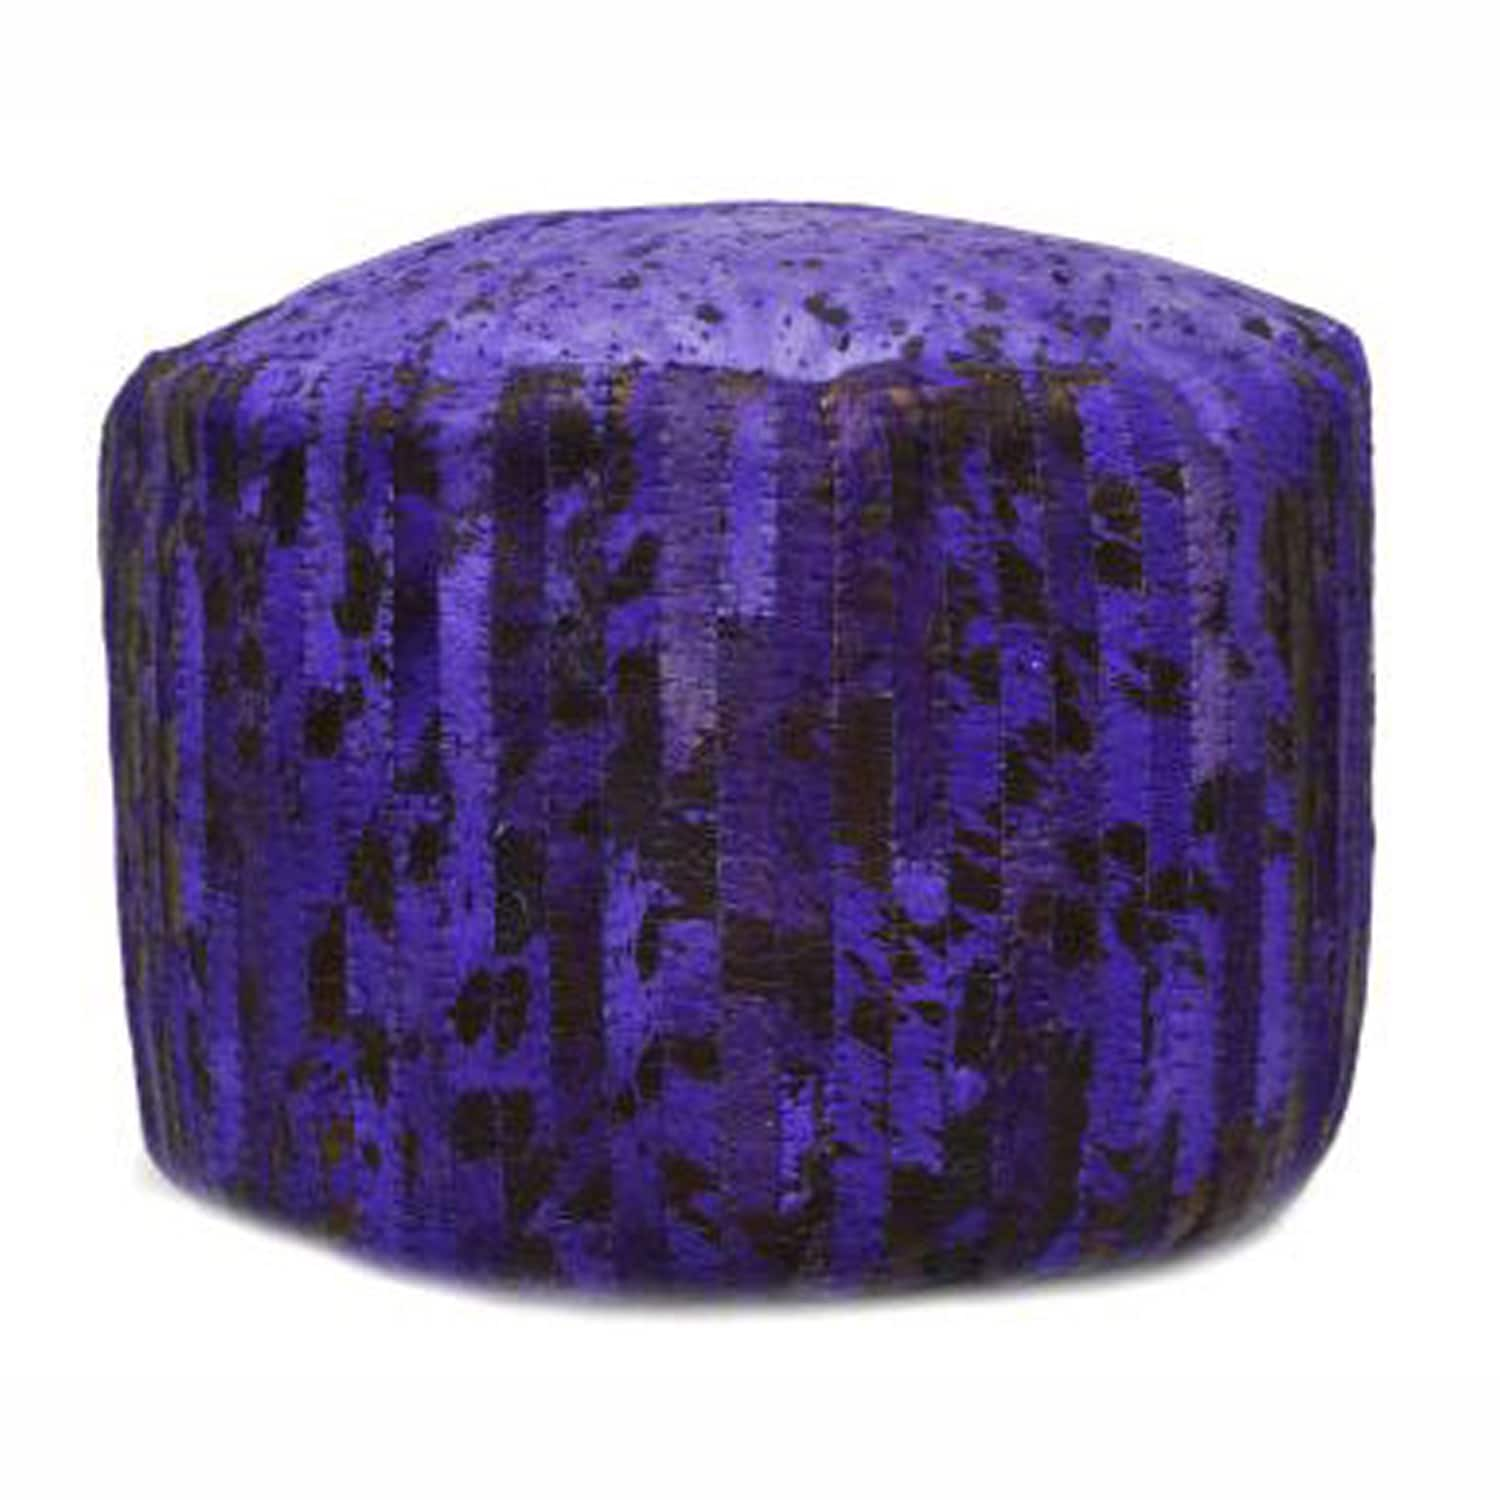 nuLOOM Violet Modern Hand-stitched Overdyed Acid washed Cowhide Pouf at Sears.com